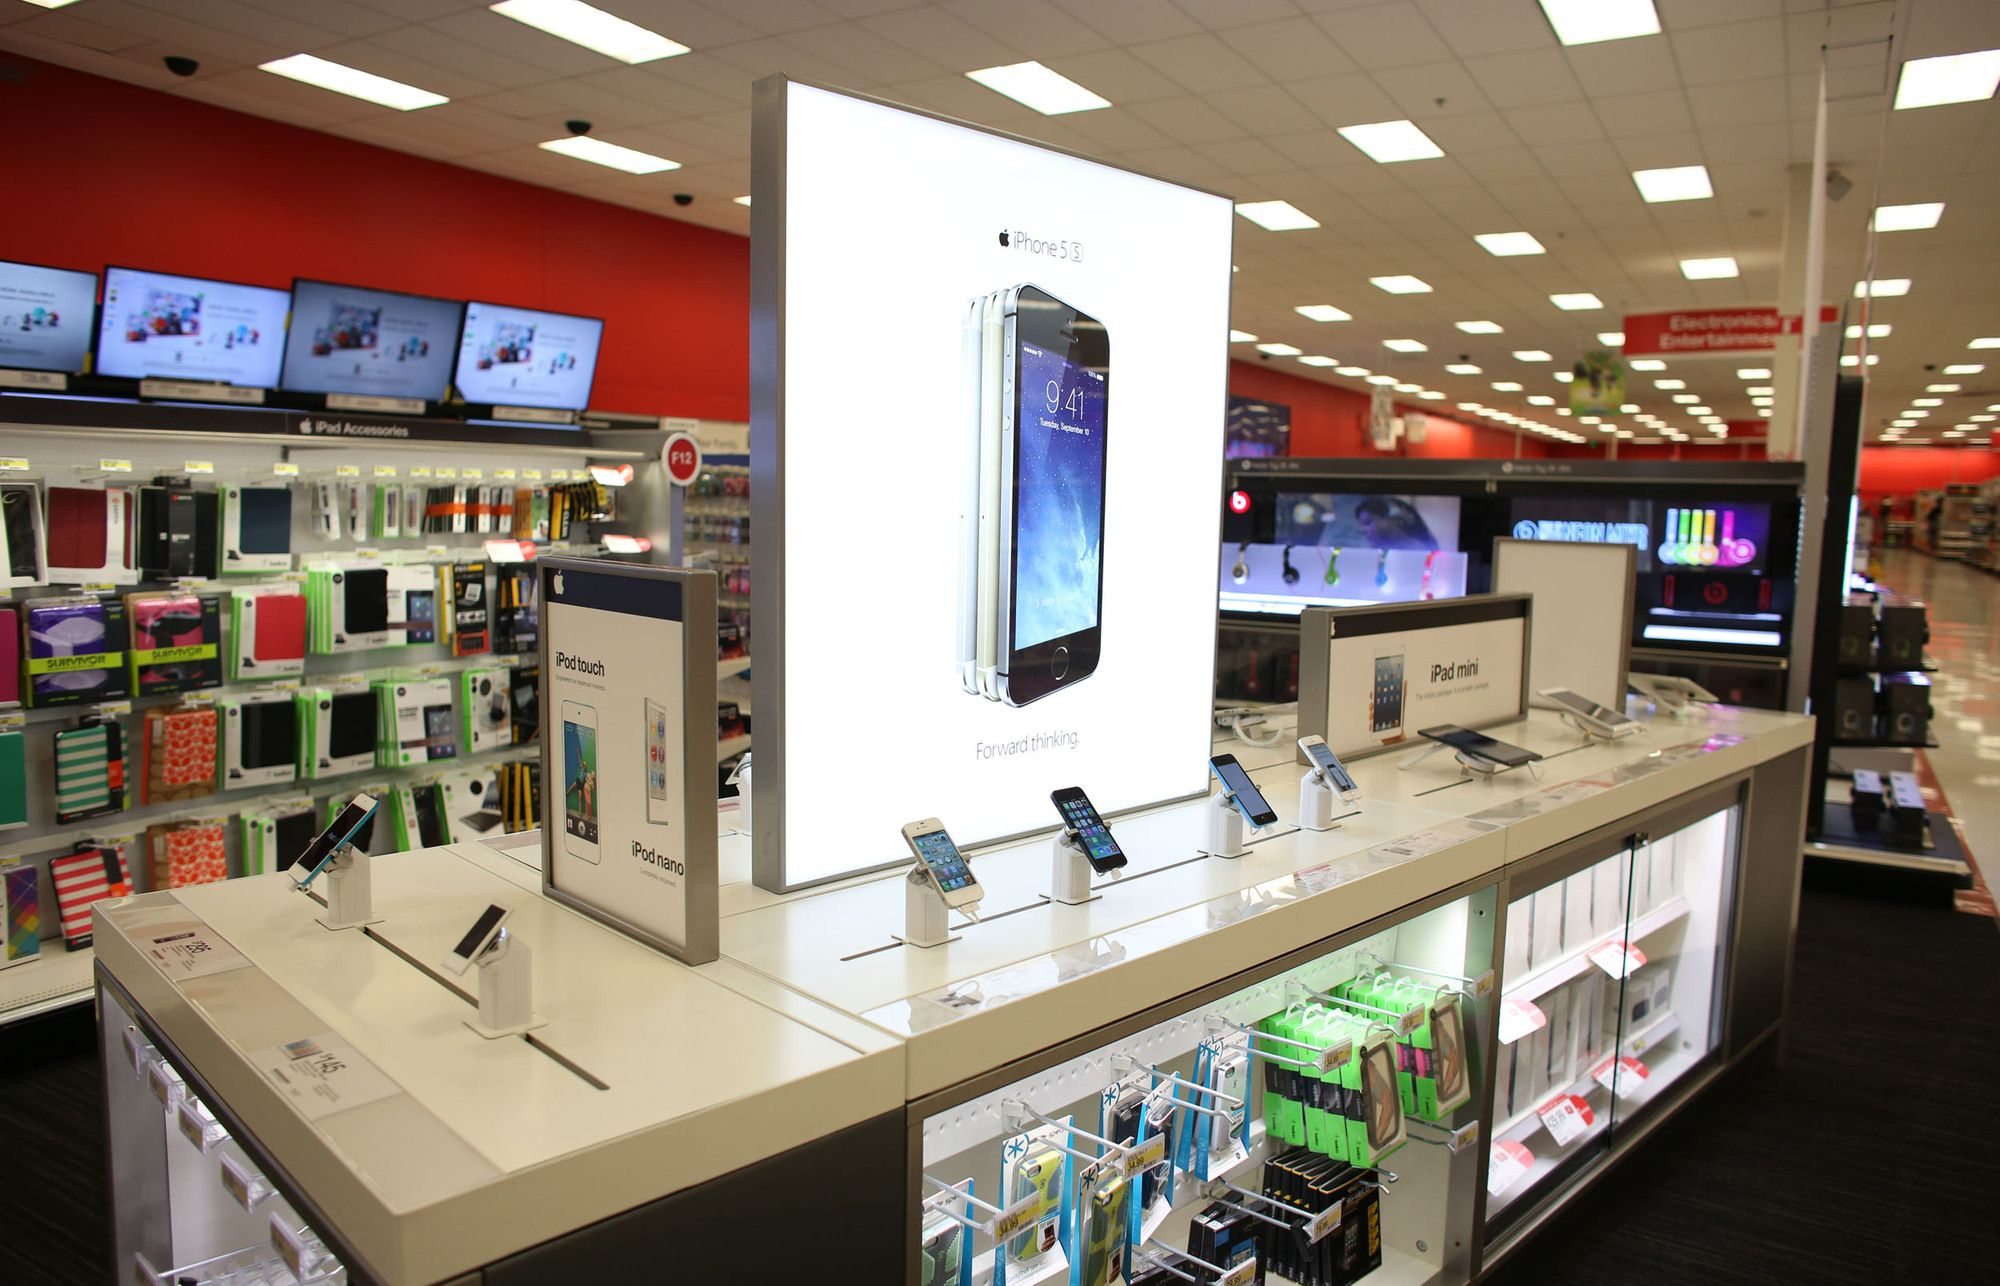 Target S New In Store Electronics Centers Look Kinda Like Apple Stores Retail Fixtures Retail Display Electronics Store